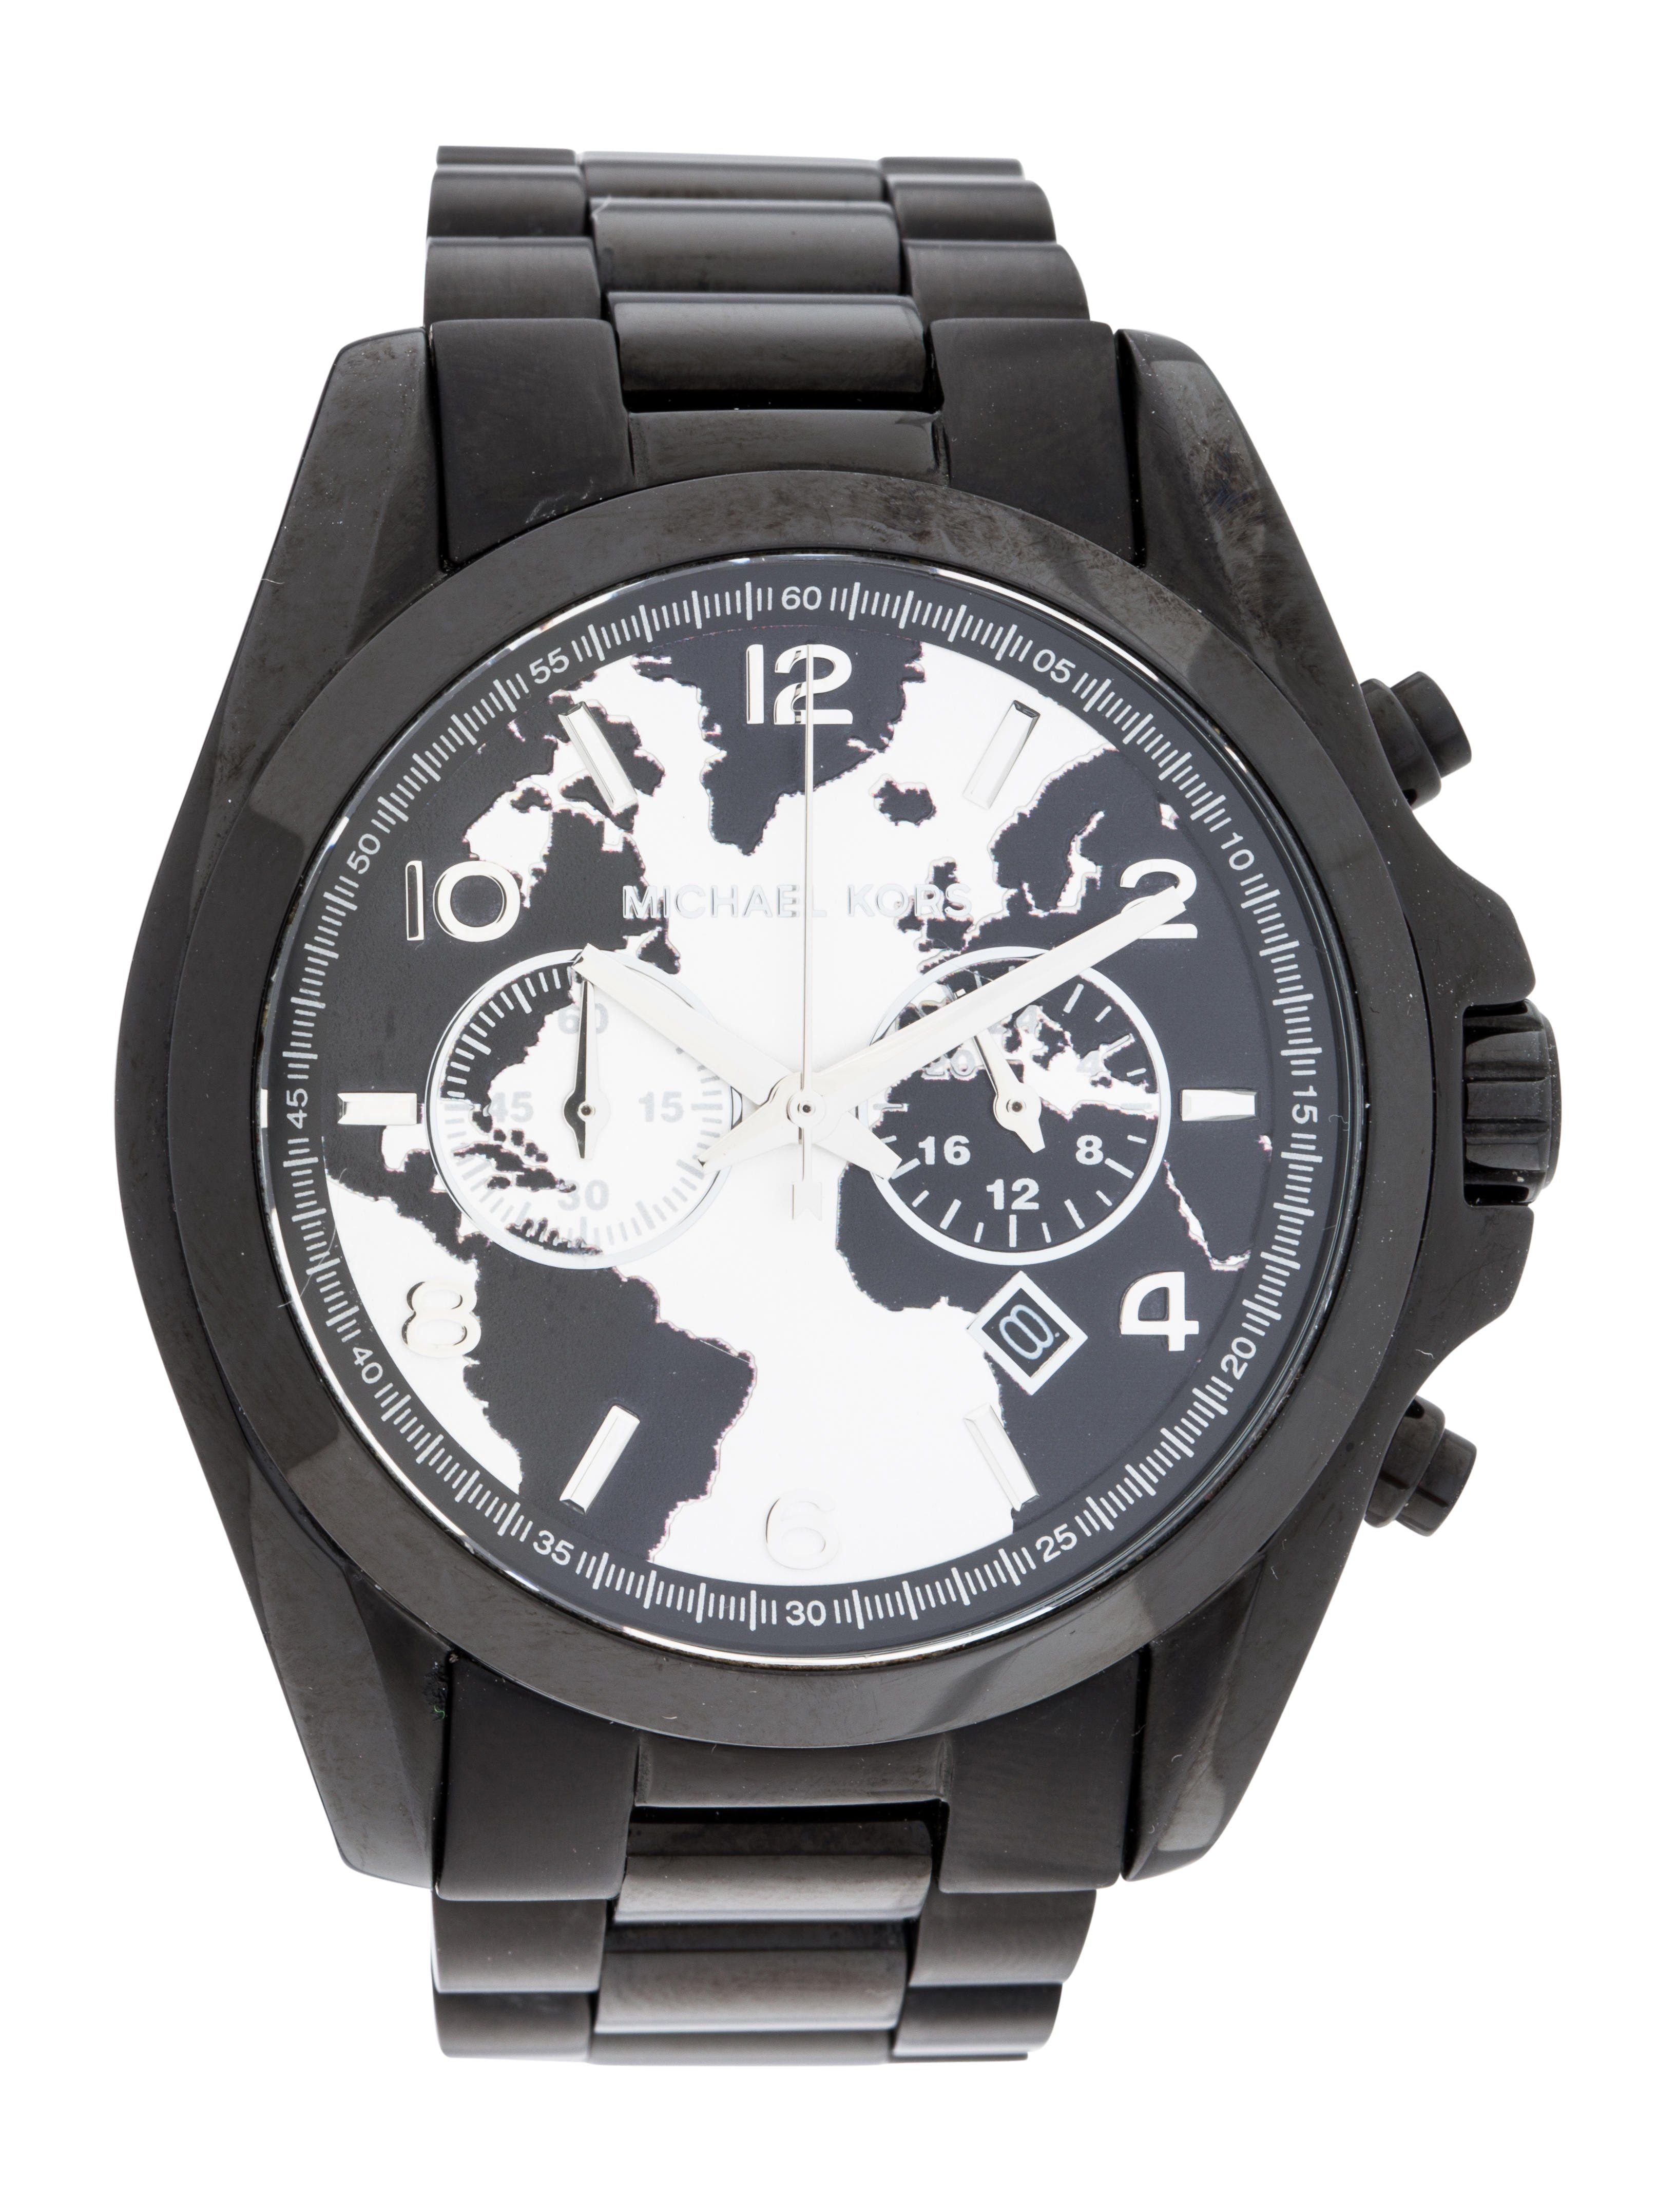 Hunger Stop Oversized Bradshaw Watch Chronograph Watches Watch